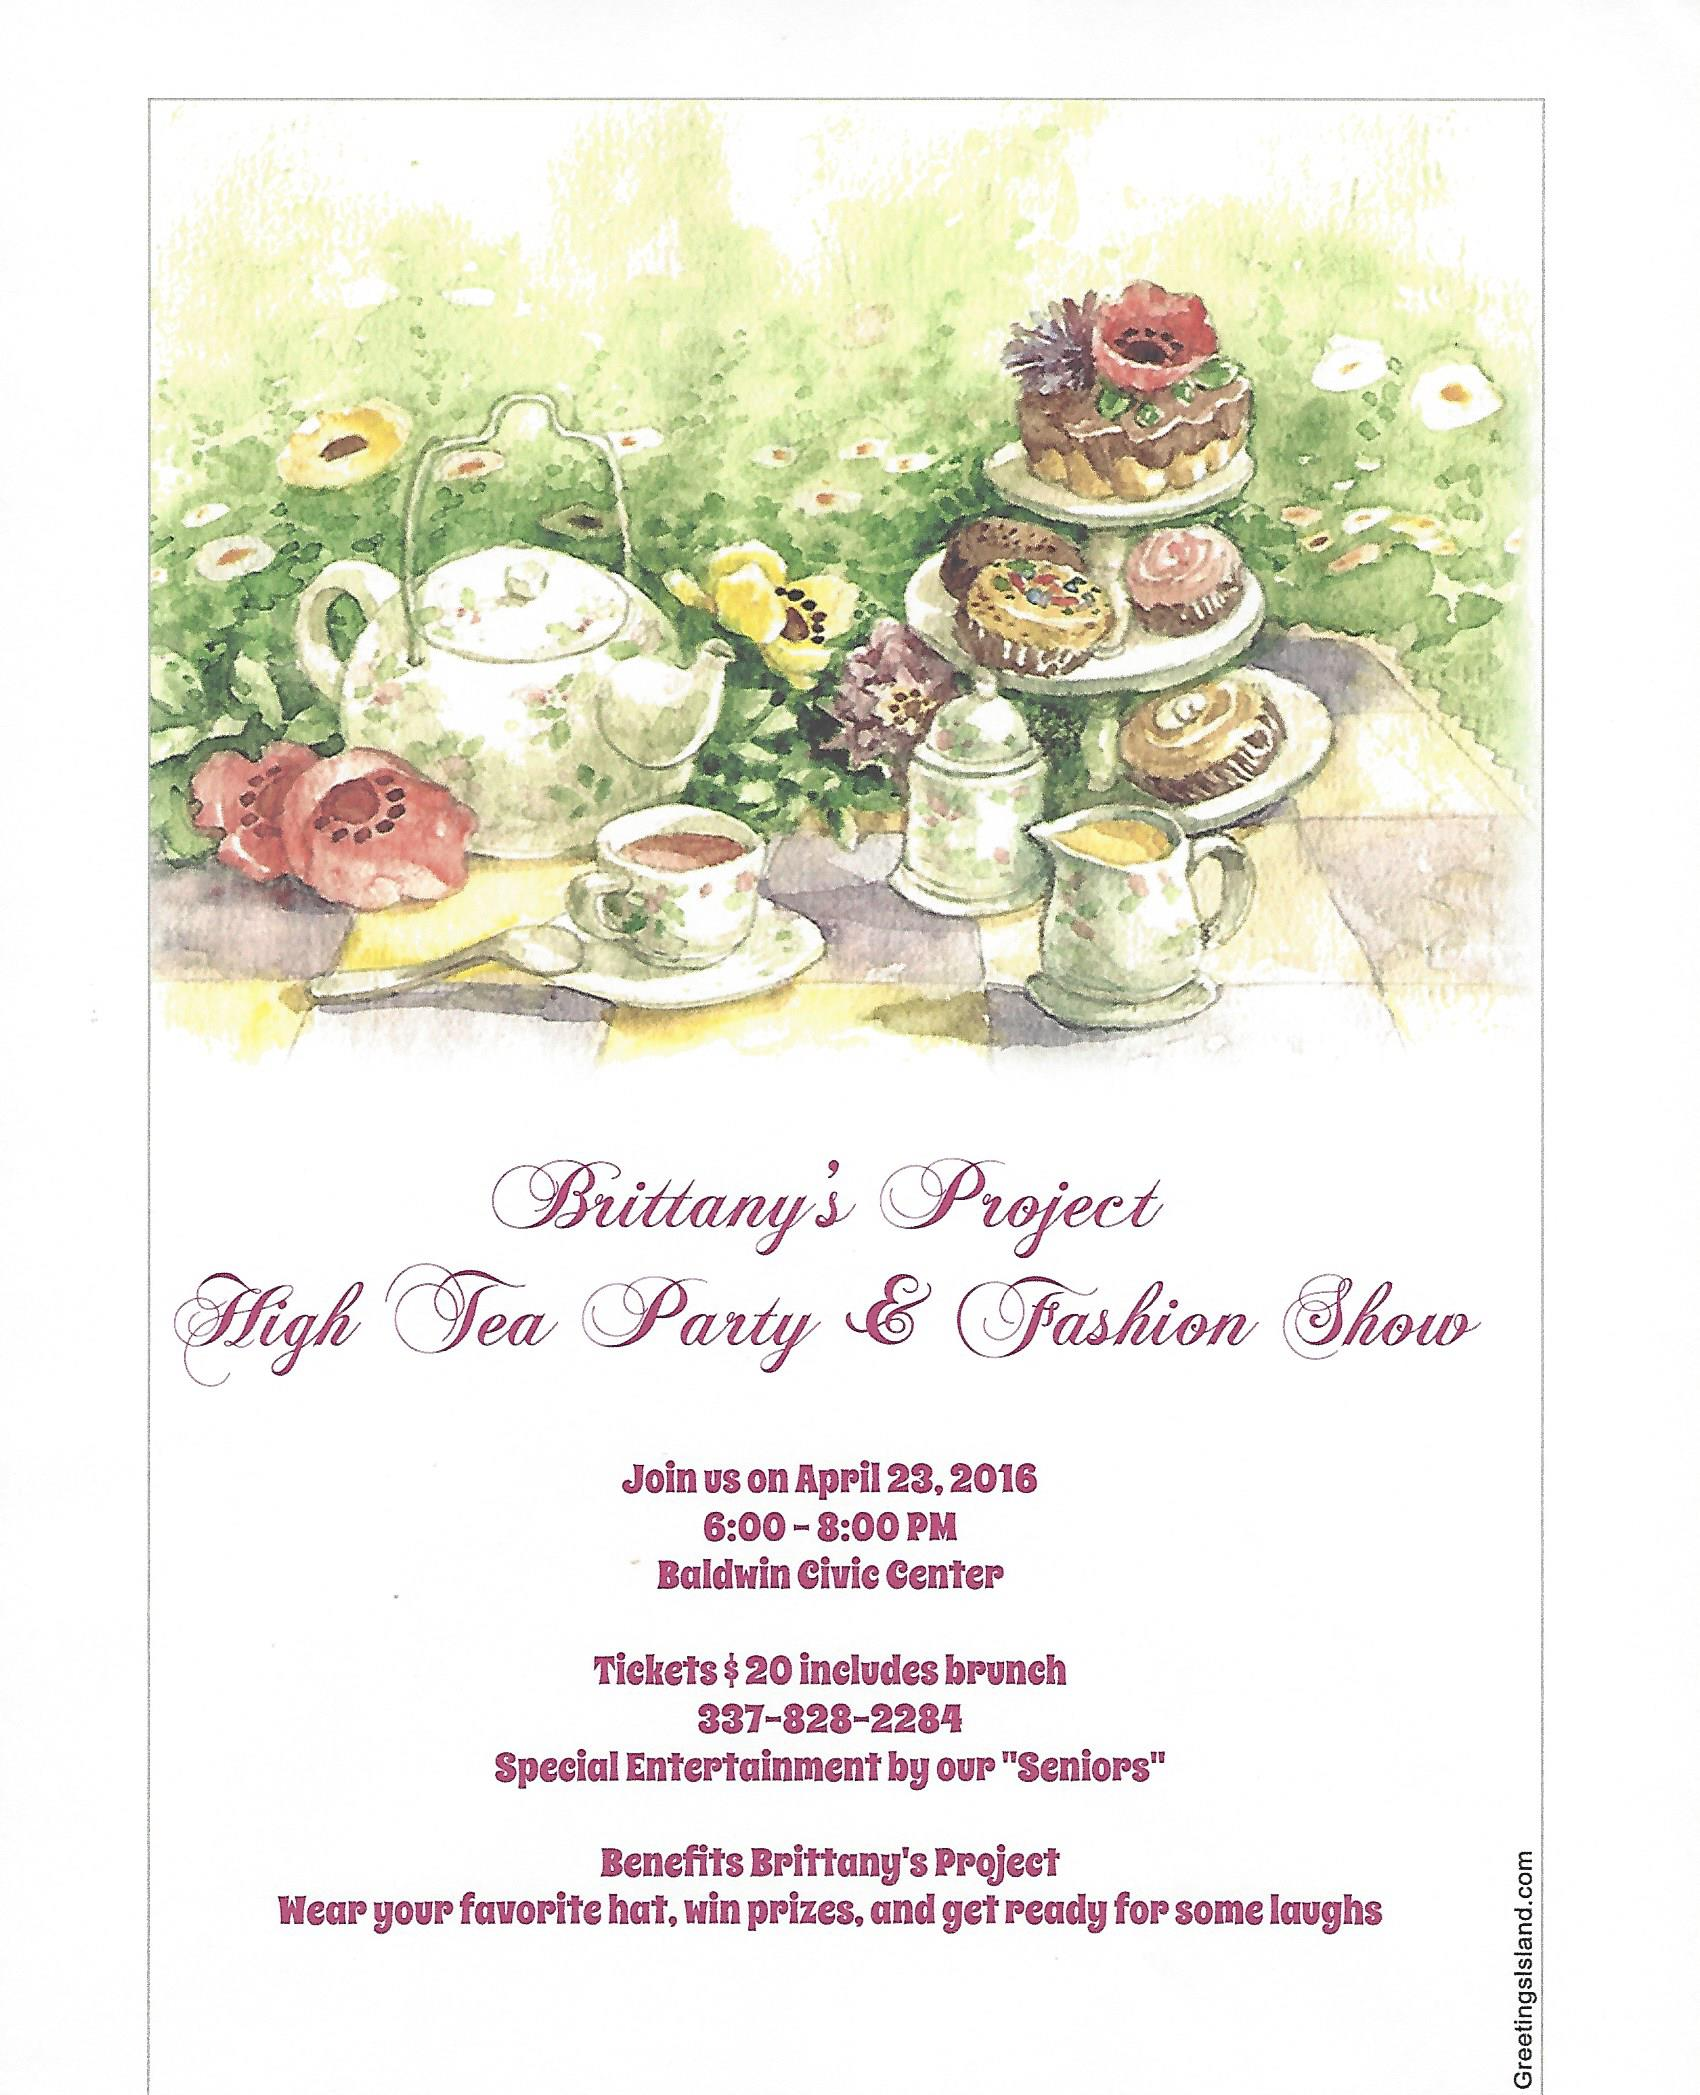 Events - High Tea Party & Fashion Show - Brittany Project - A ...